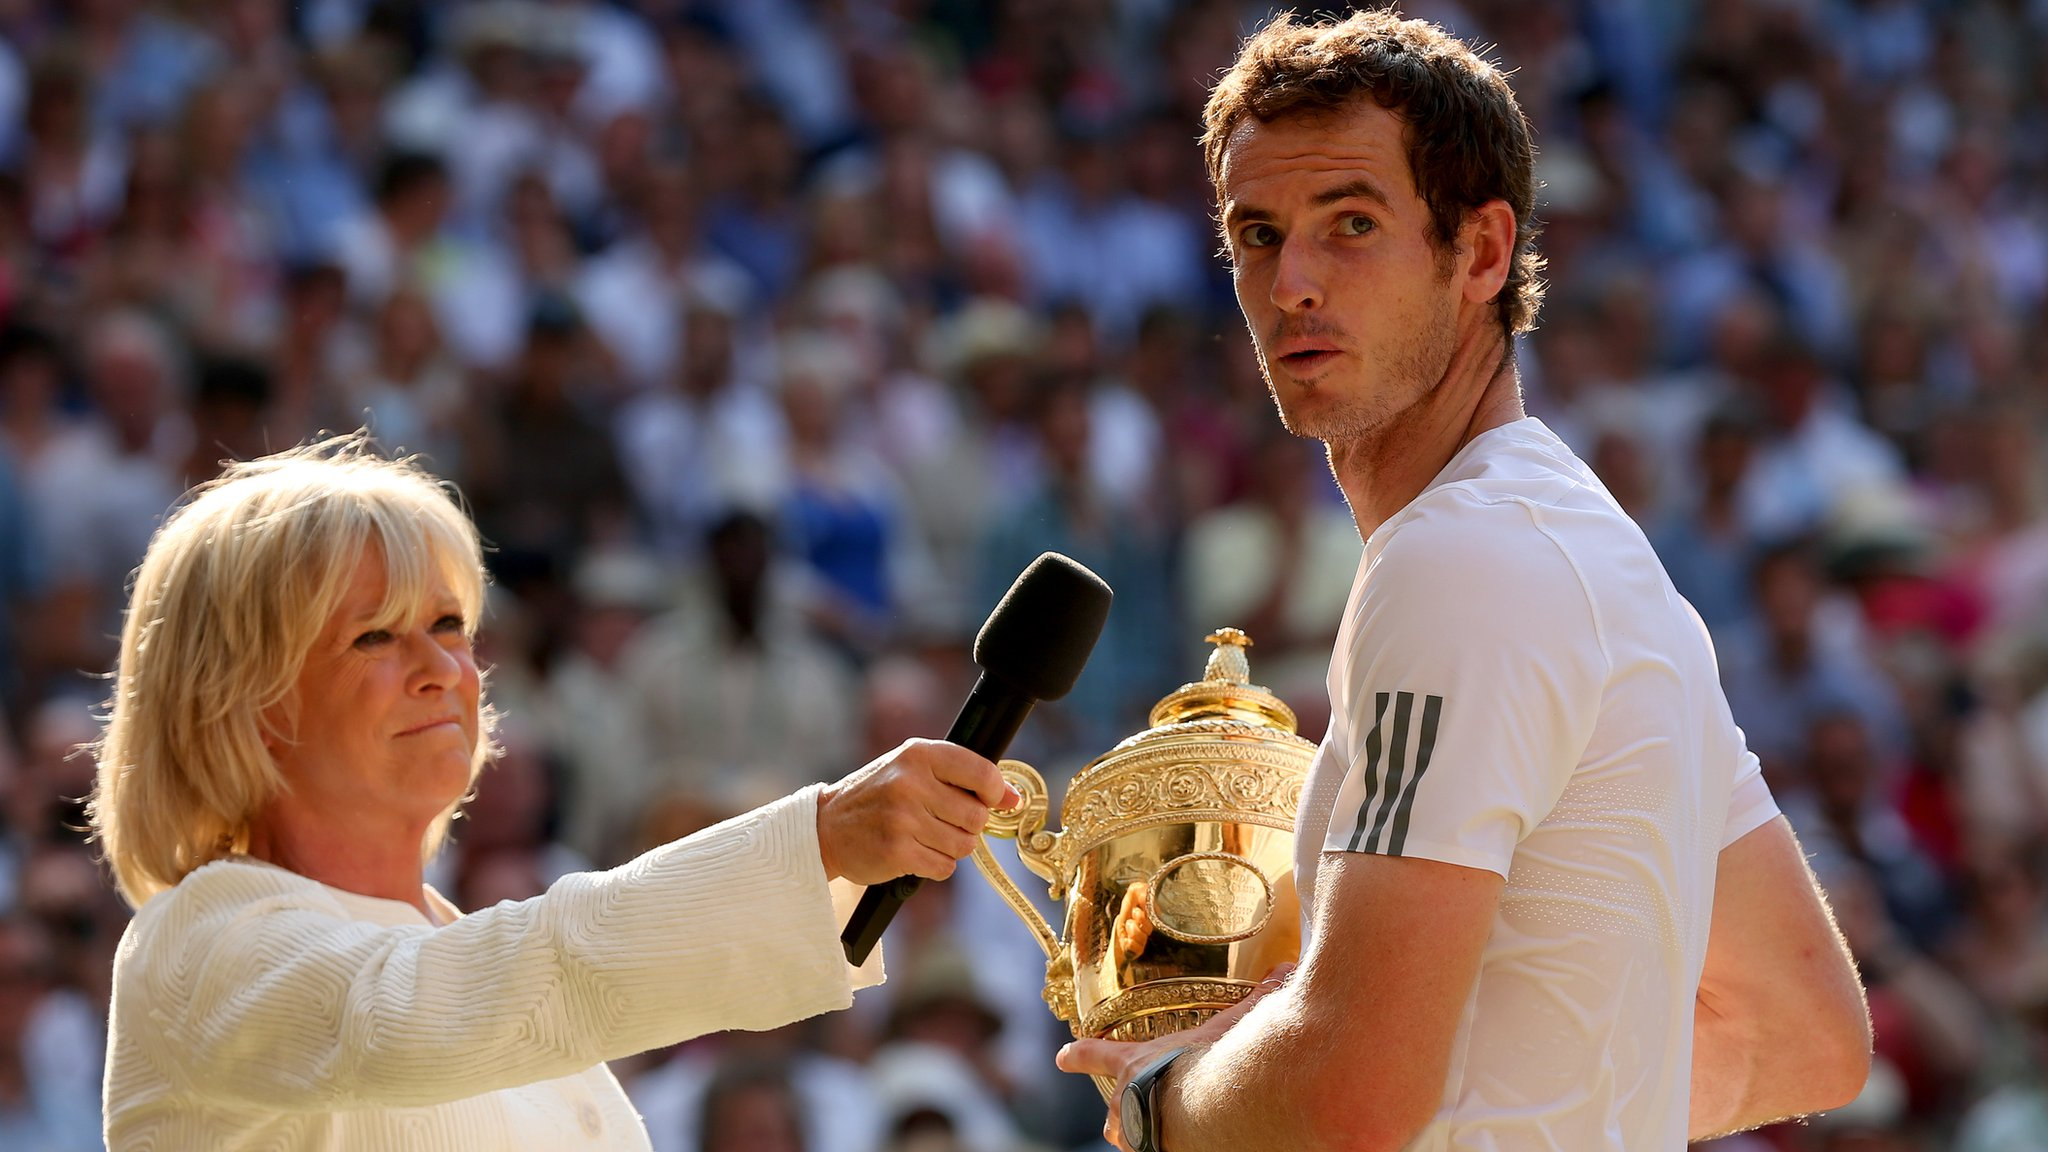 'He's the greatest we have had' - Barker's emotional Murray tribute